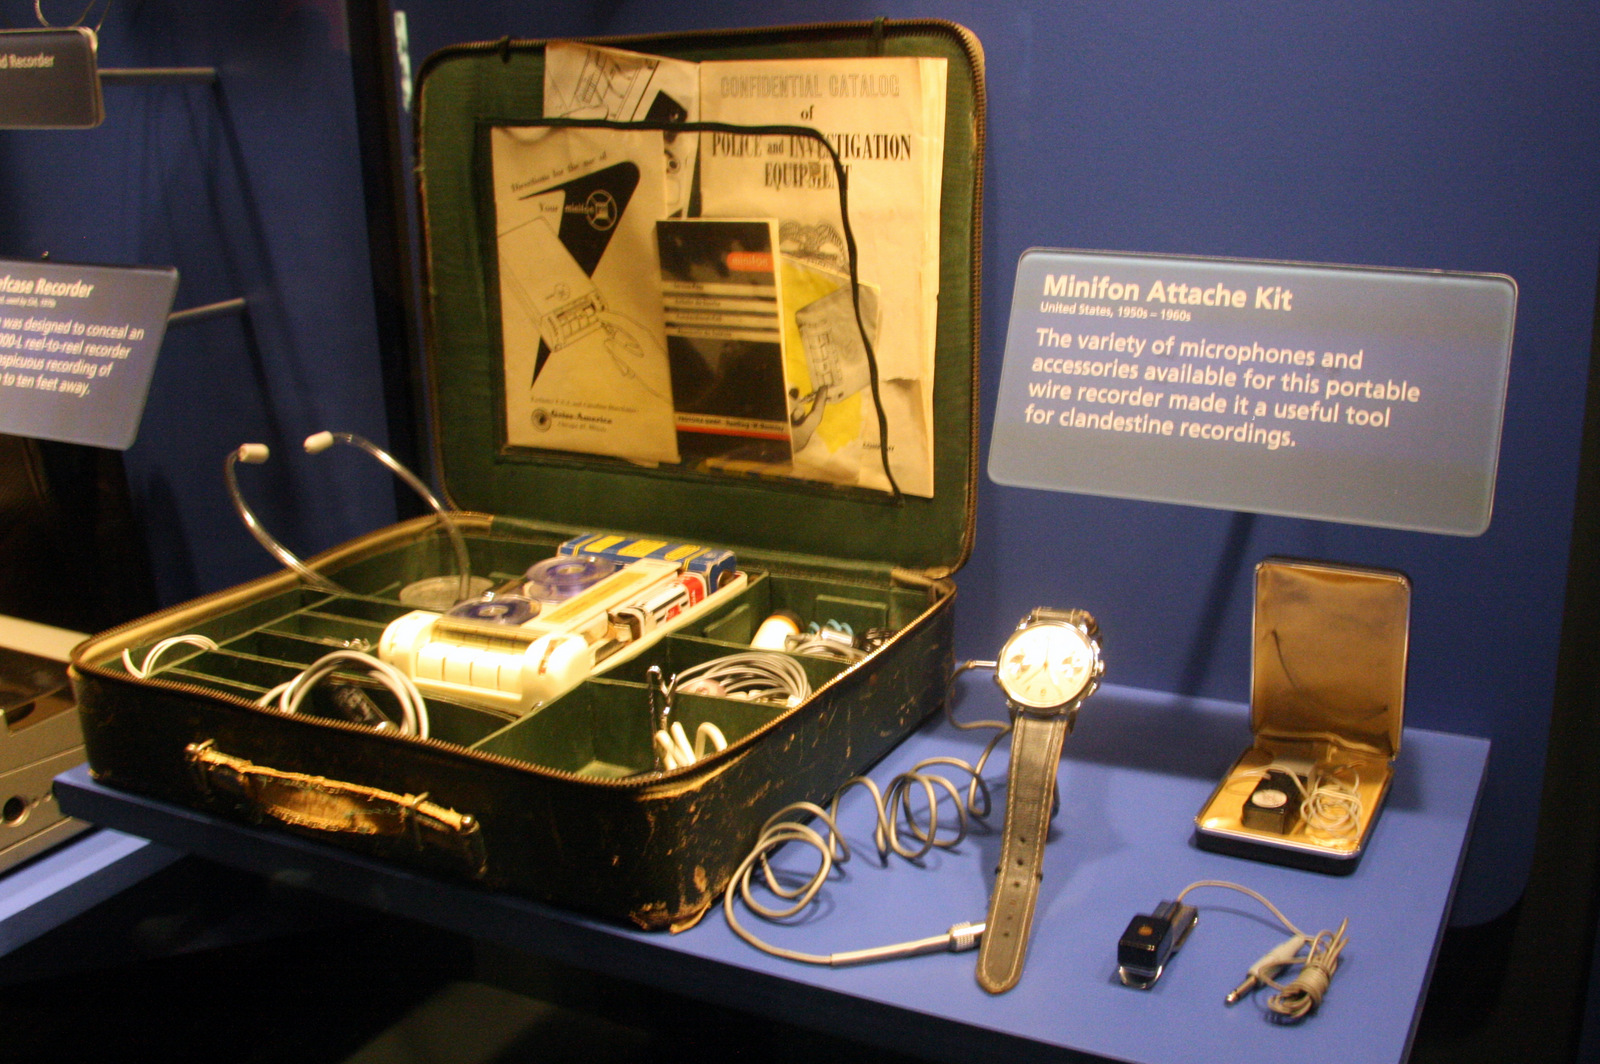 The International Spy Museum is packed with vintage spy equipment from the Cold War, World War II, the American Revolution, and even further back in time.